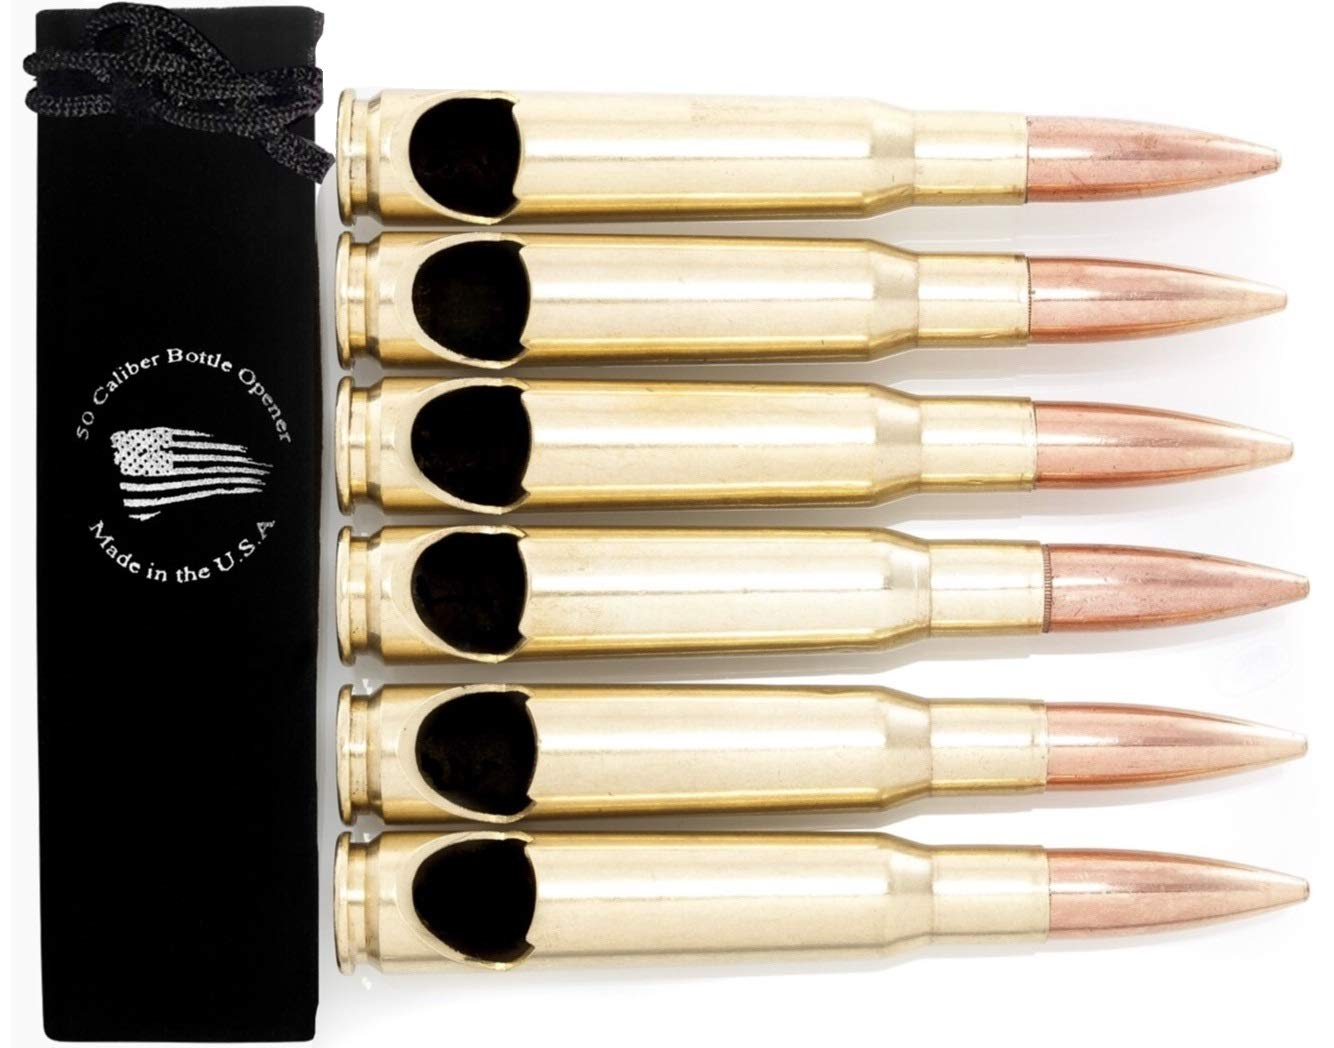 50 Caliber BMG Real Bullet Bottle Opener - Set of 6 - Made in the USA